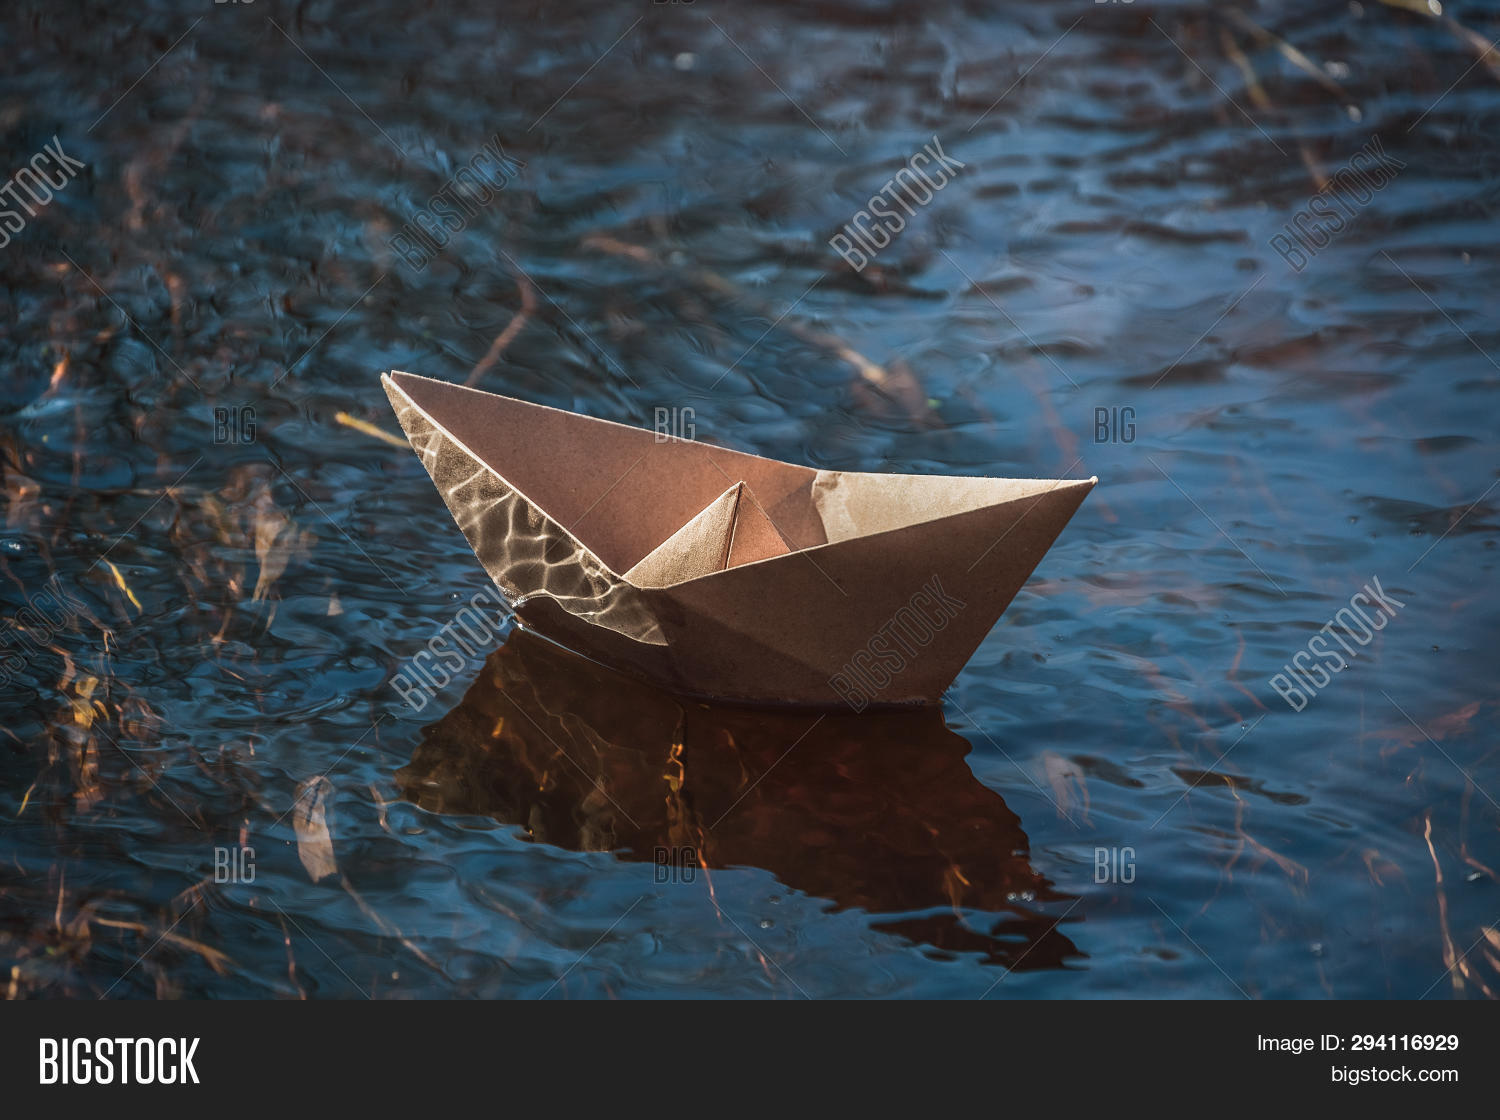 How to make a paper boat that floats - Origami boat. - YouTube | 1120x1500